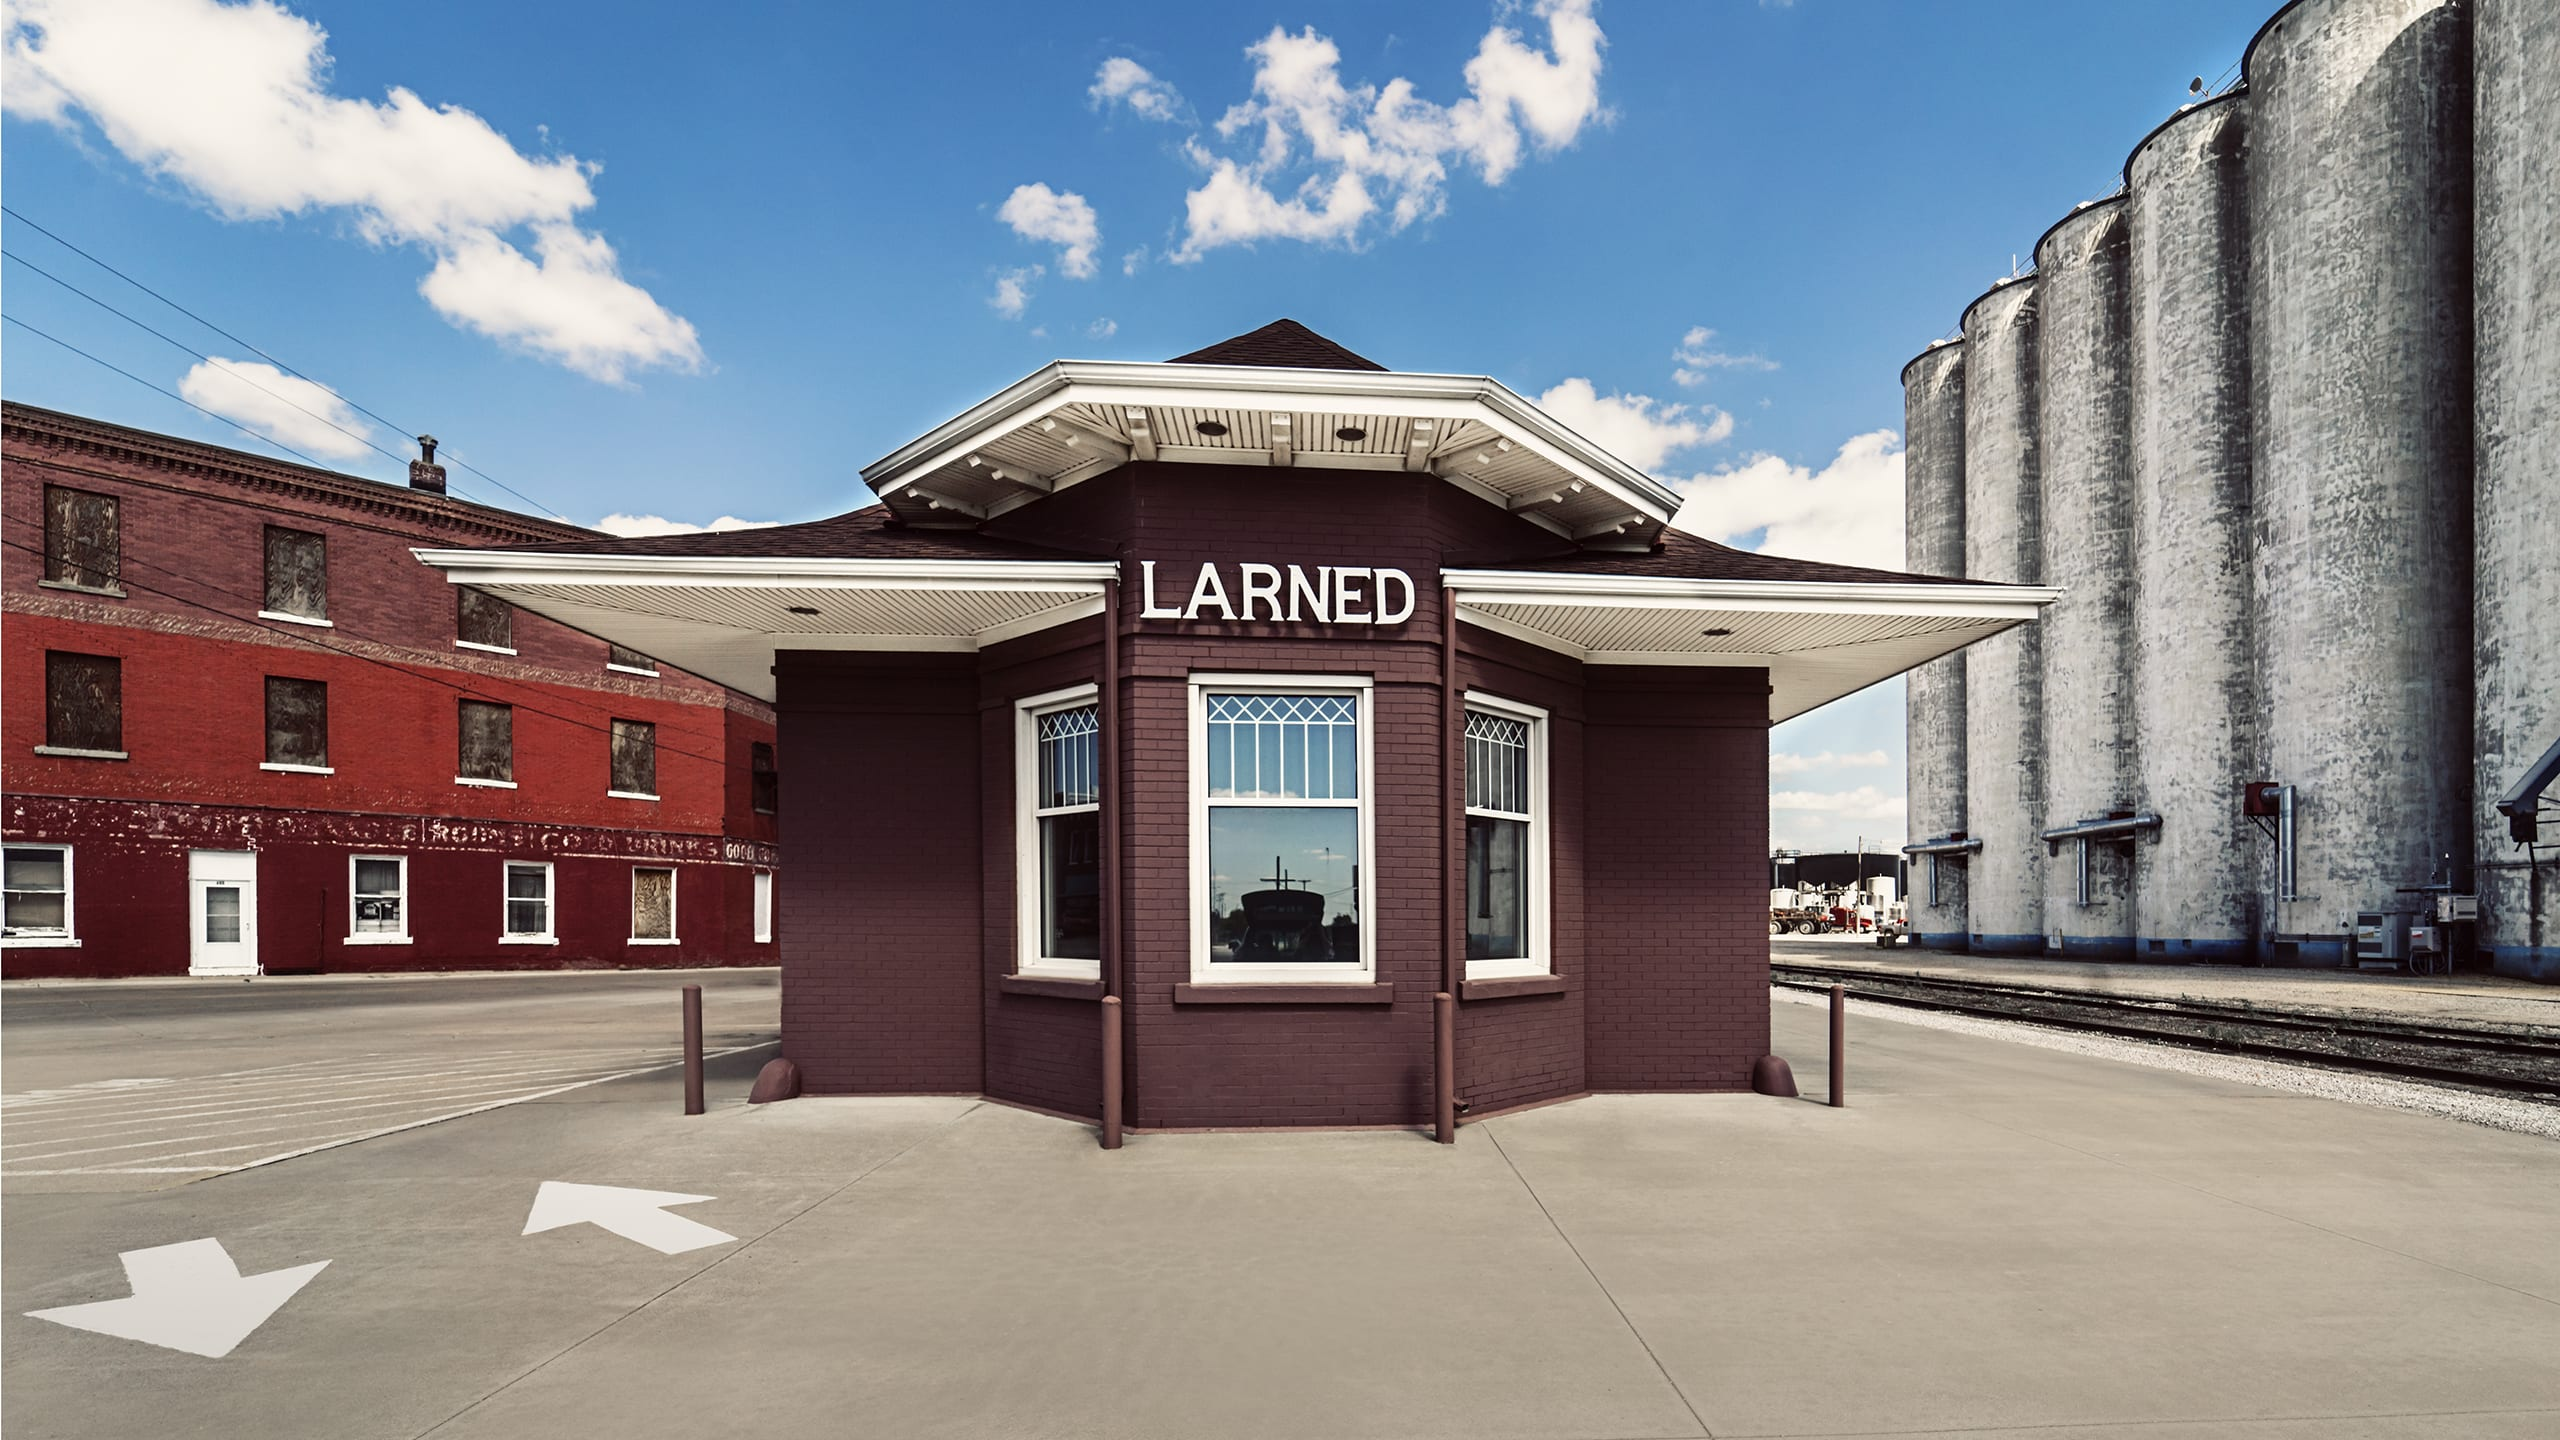 Larned town